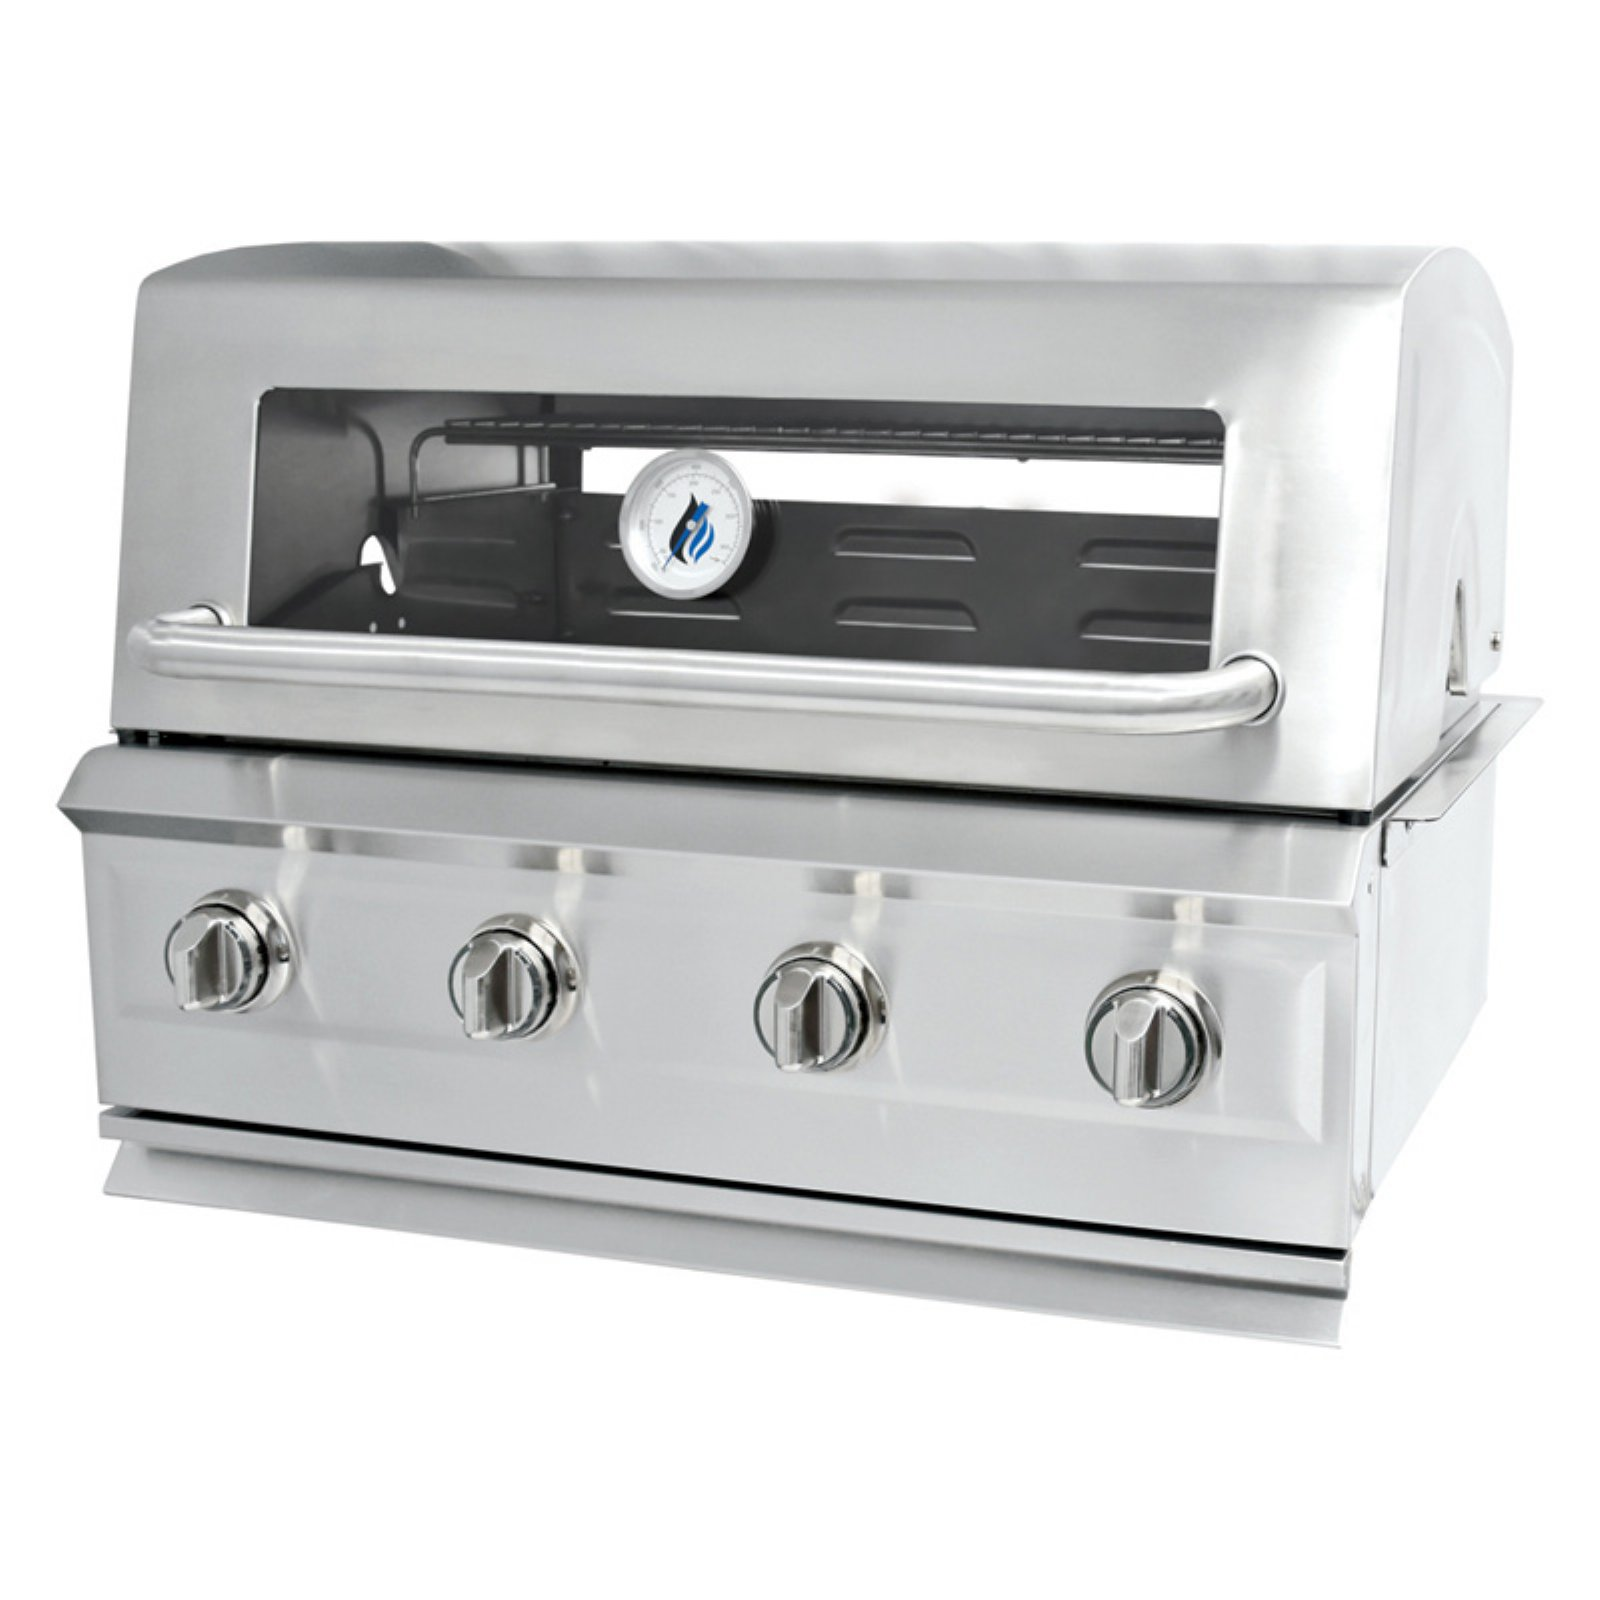 3 Embers GAS8490AS 4-burner Built In Gas Grill by The Boltz Group LLC